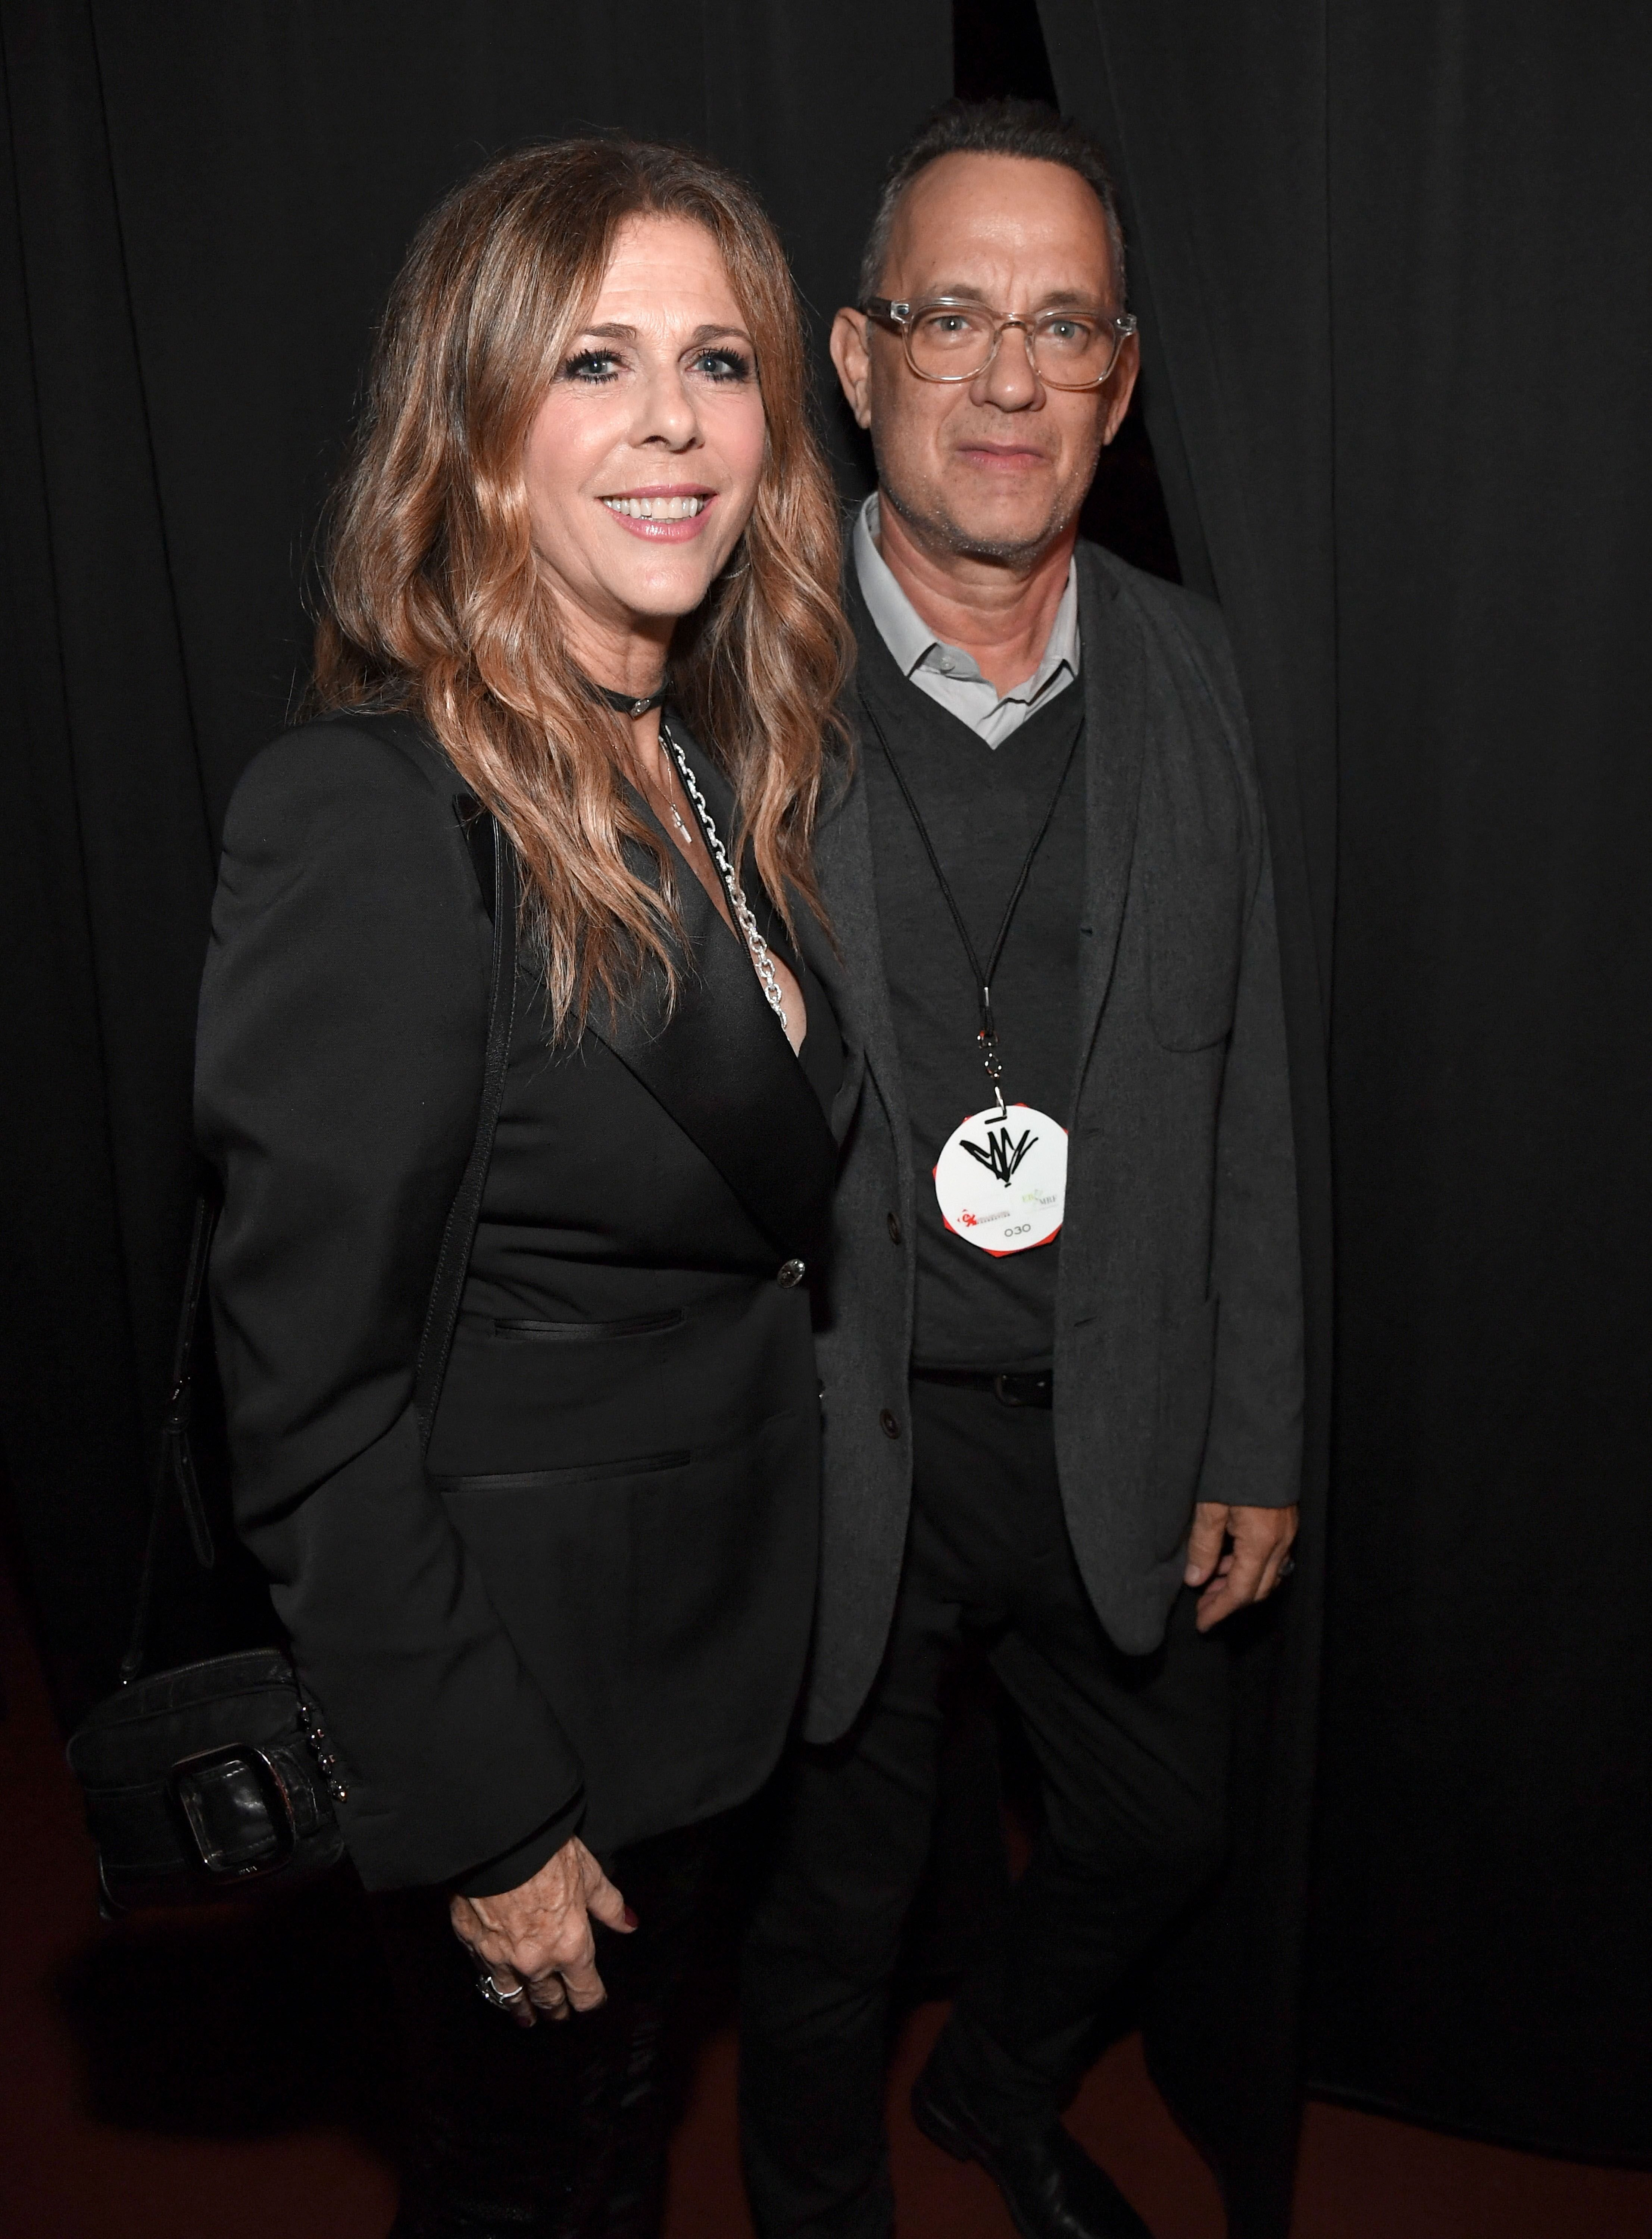 Rita Wilson and Tom Hanks at The Forum on January 16, 2019, in Inglewood, California | Photo: Kevin Mazur/Getty Images